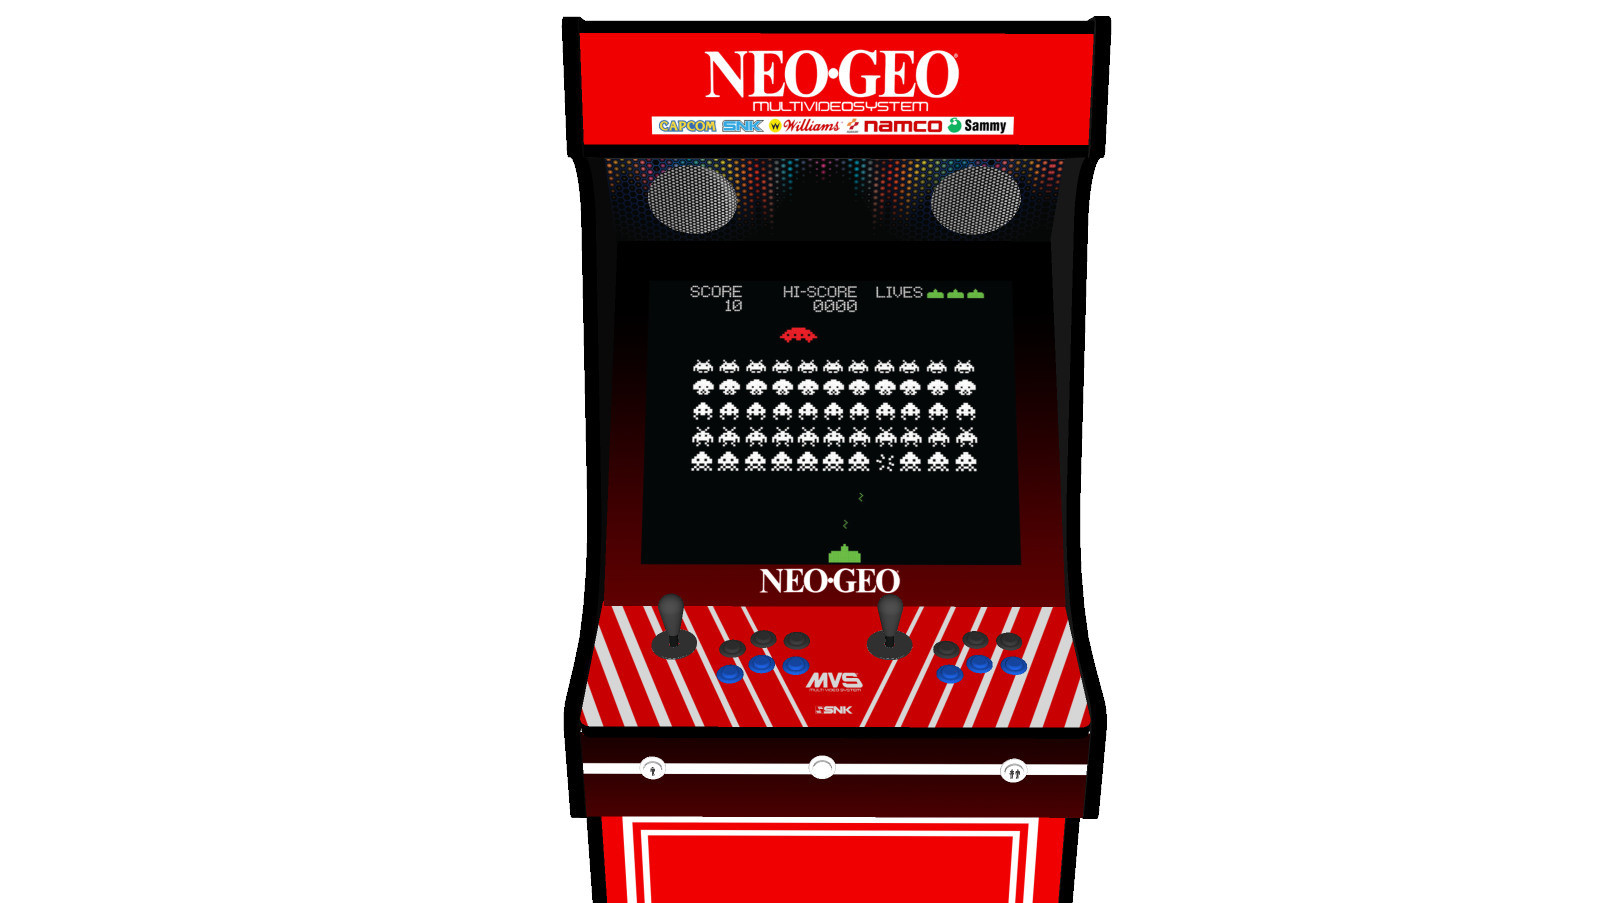 Classic-Upright-Arcade-Machine-NEO-GEO-Theme-100w-subwoofer-24-inch-screen-middle